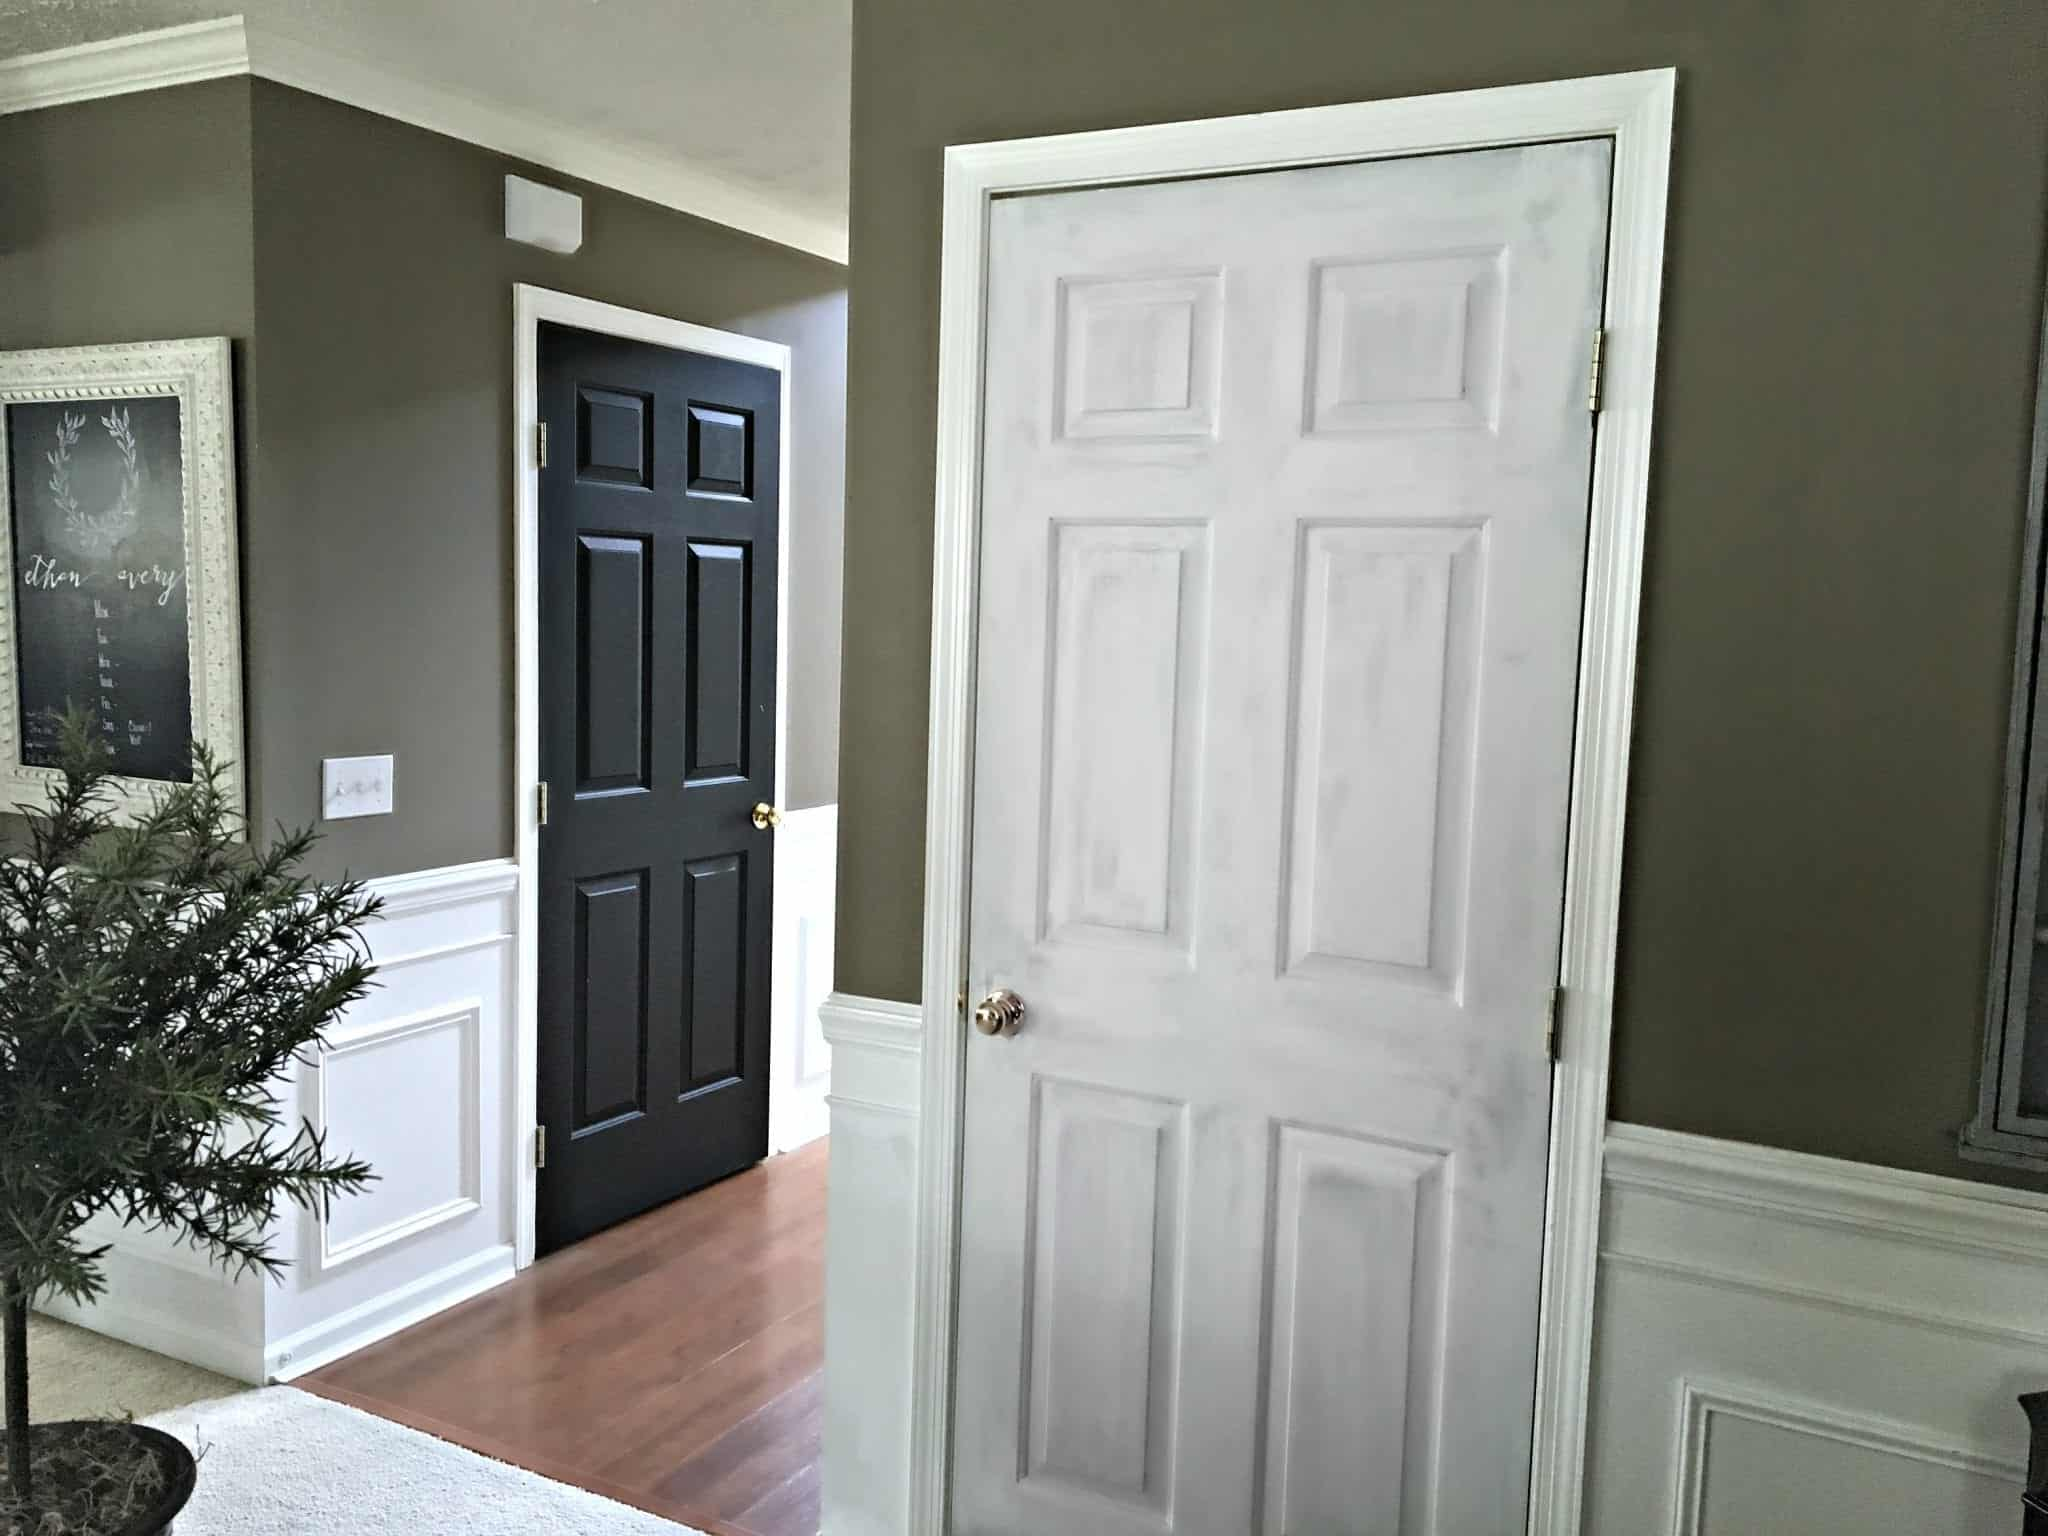 Door blanks oversized external door blank solid core Best white paint for interior doors